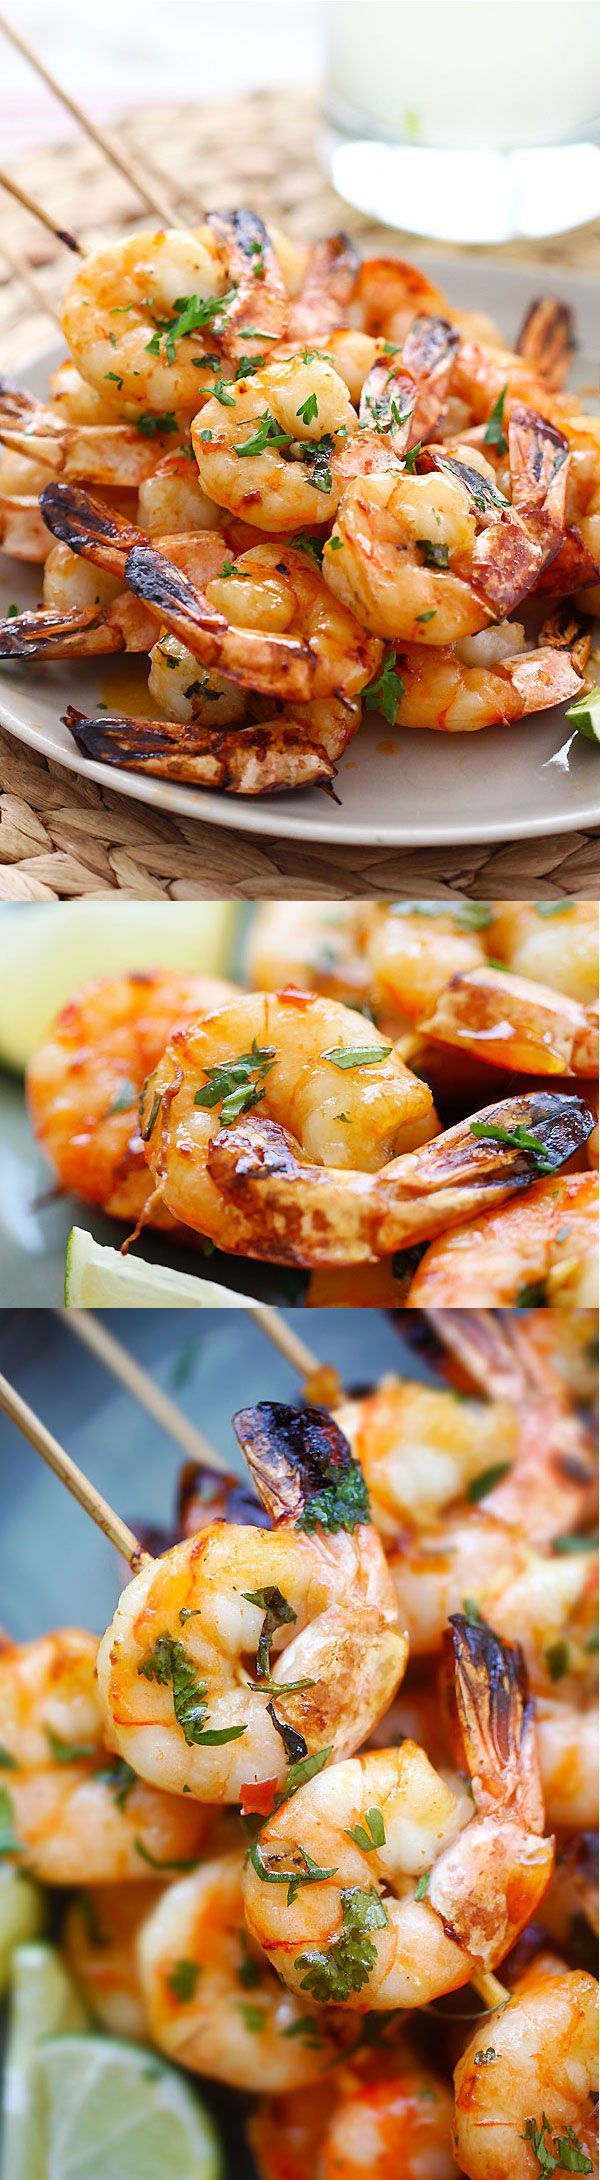 Honey Sriracha Shrimp Kebab - crazy delicious shrimp kebab with honey Sriracha butter. Thread shrimp on skewers and grill, so easy!! | rasamalaysia.com